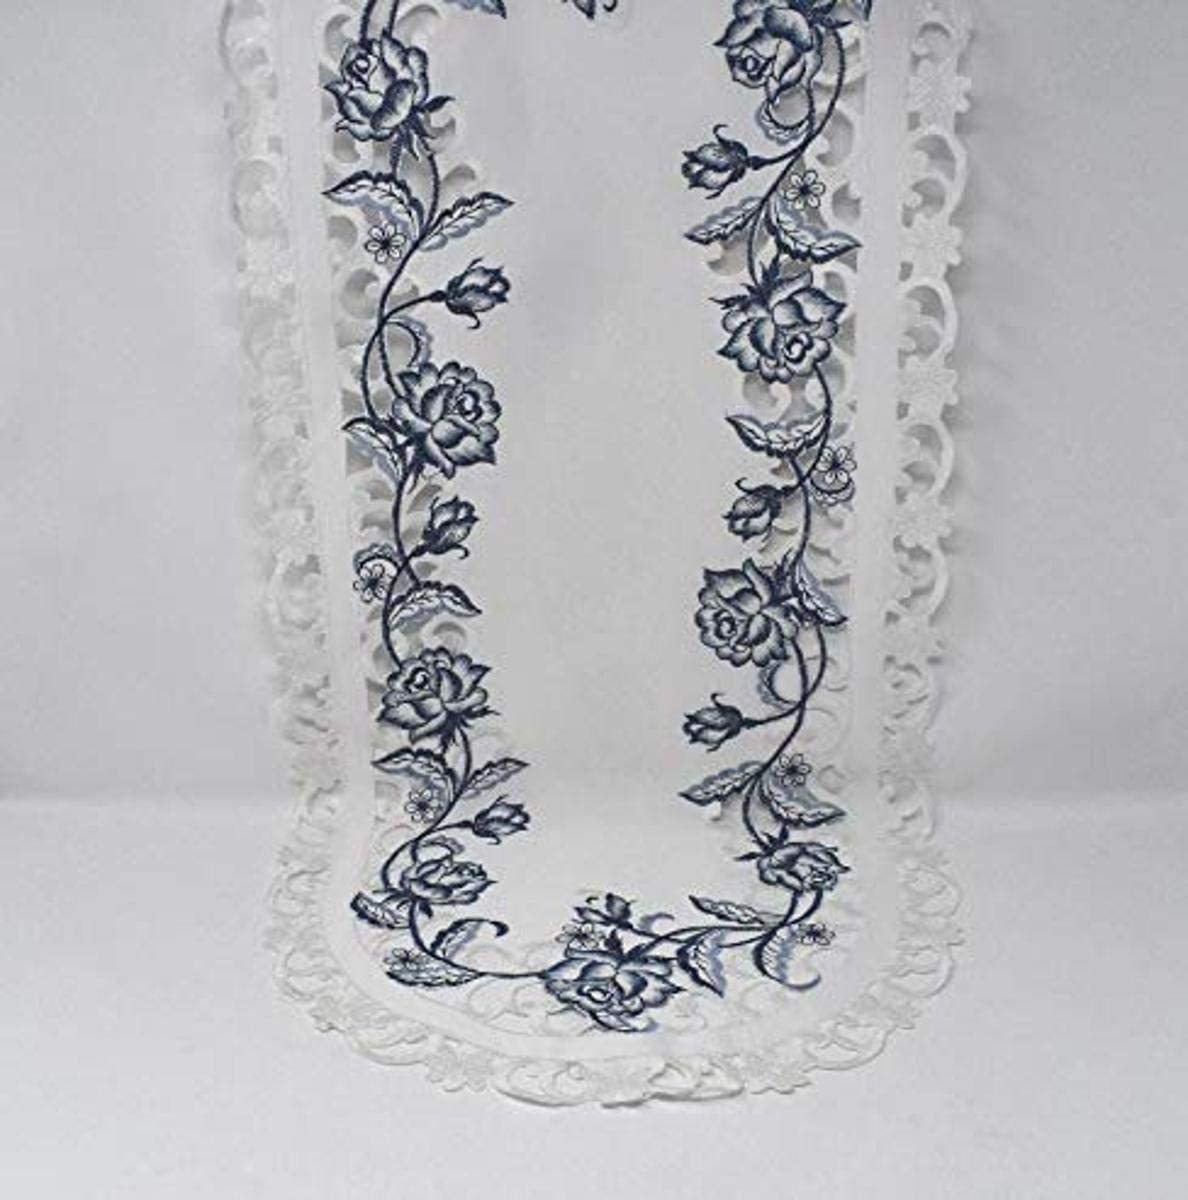 Dealing full price Latest item reduction SAINTY H8459 B- 16x54 Delft Blue Table 16